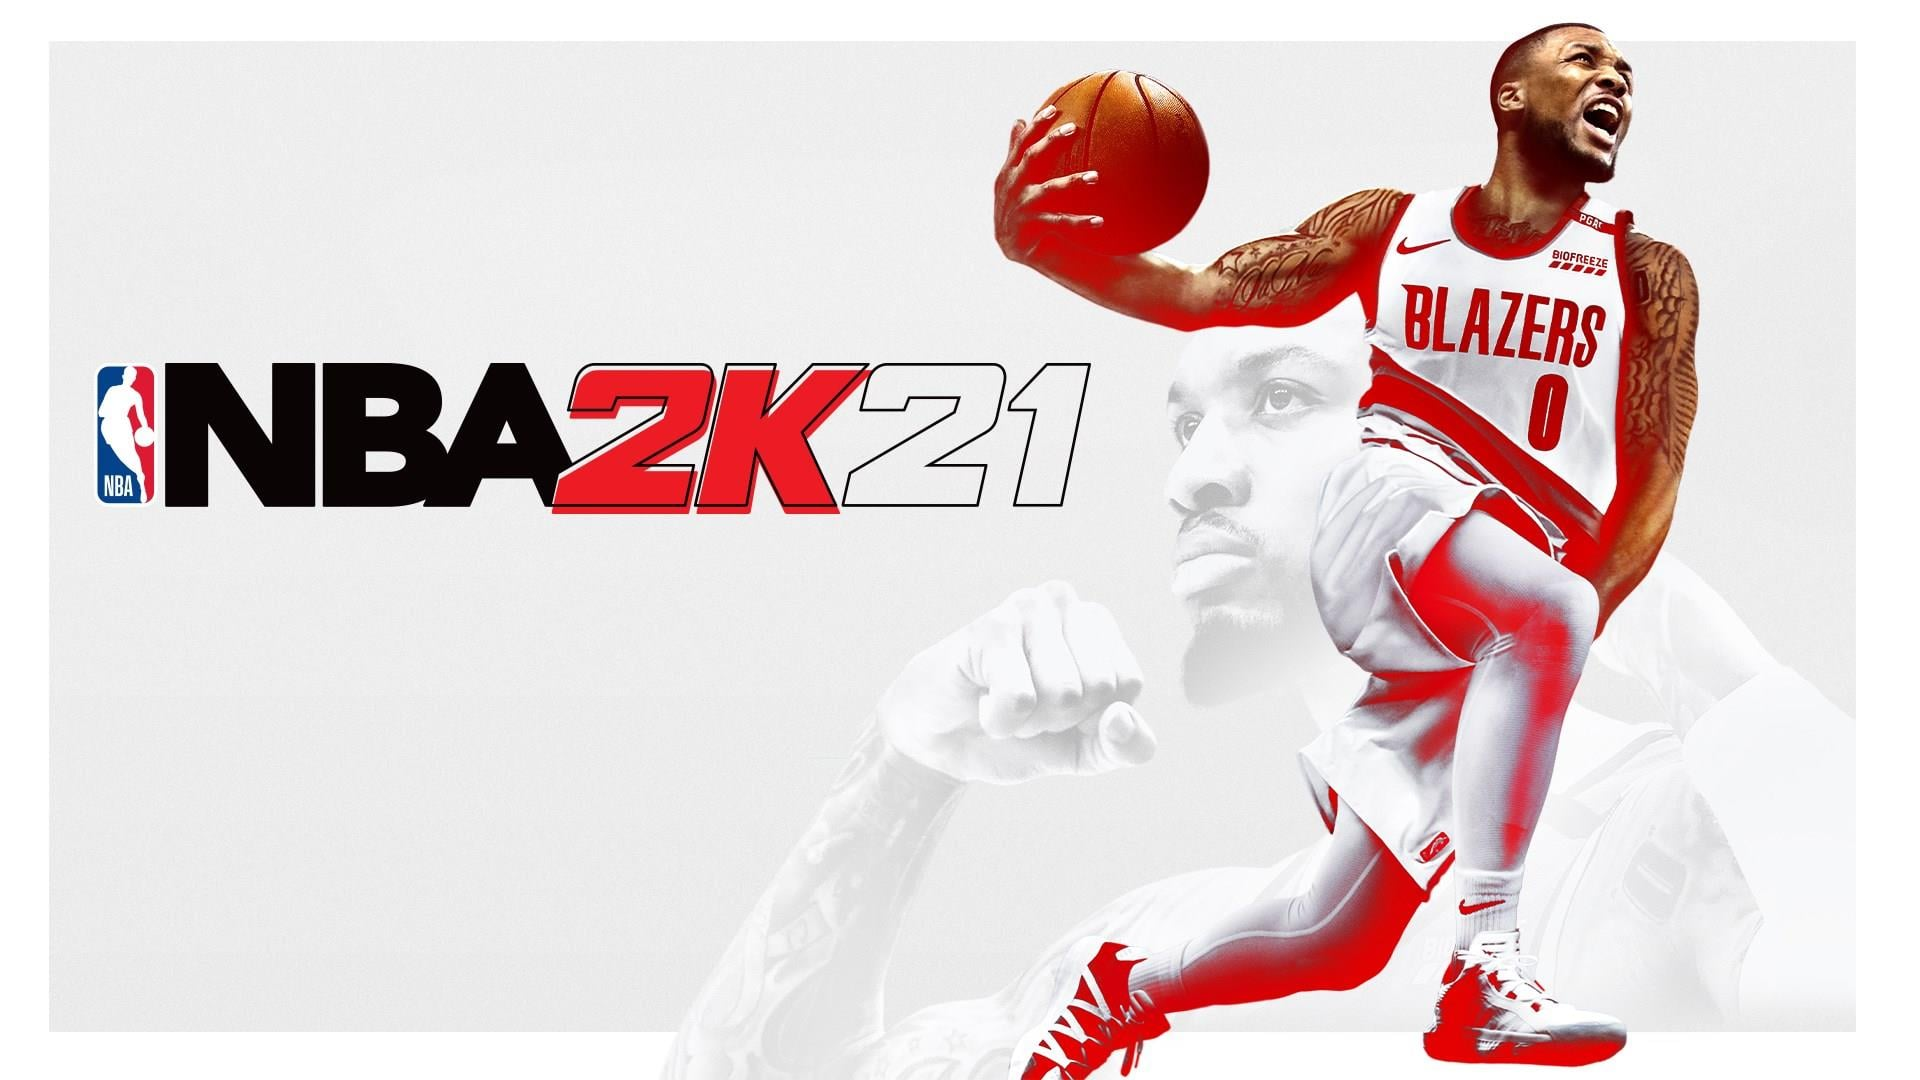 Nba 2k21 Will Not Support Smart Delivery Xbox Series X Version Will Cost 69 99